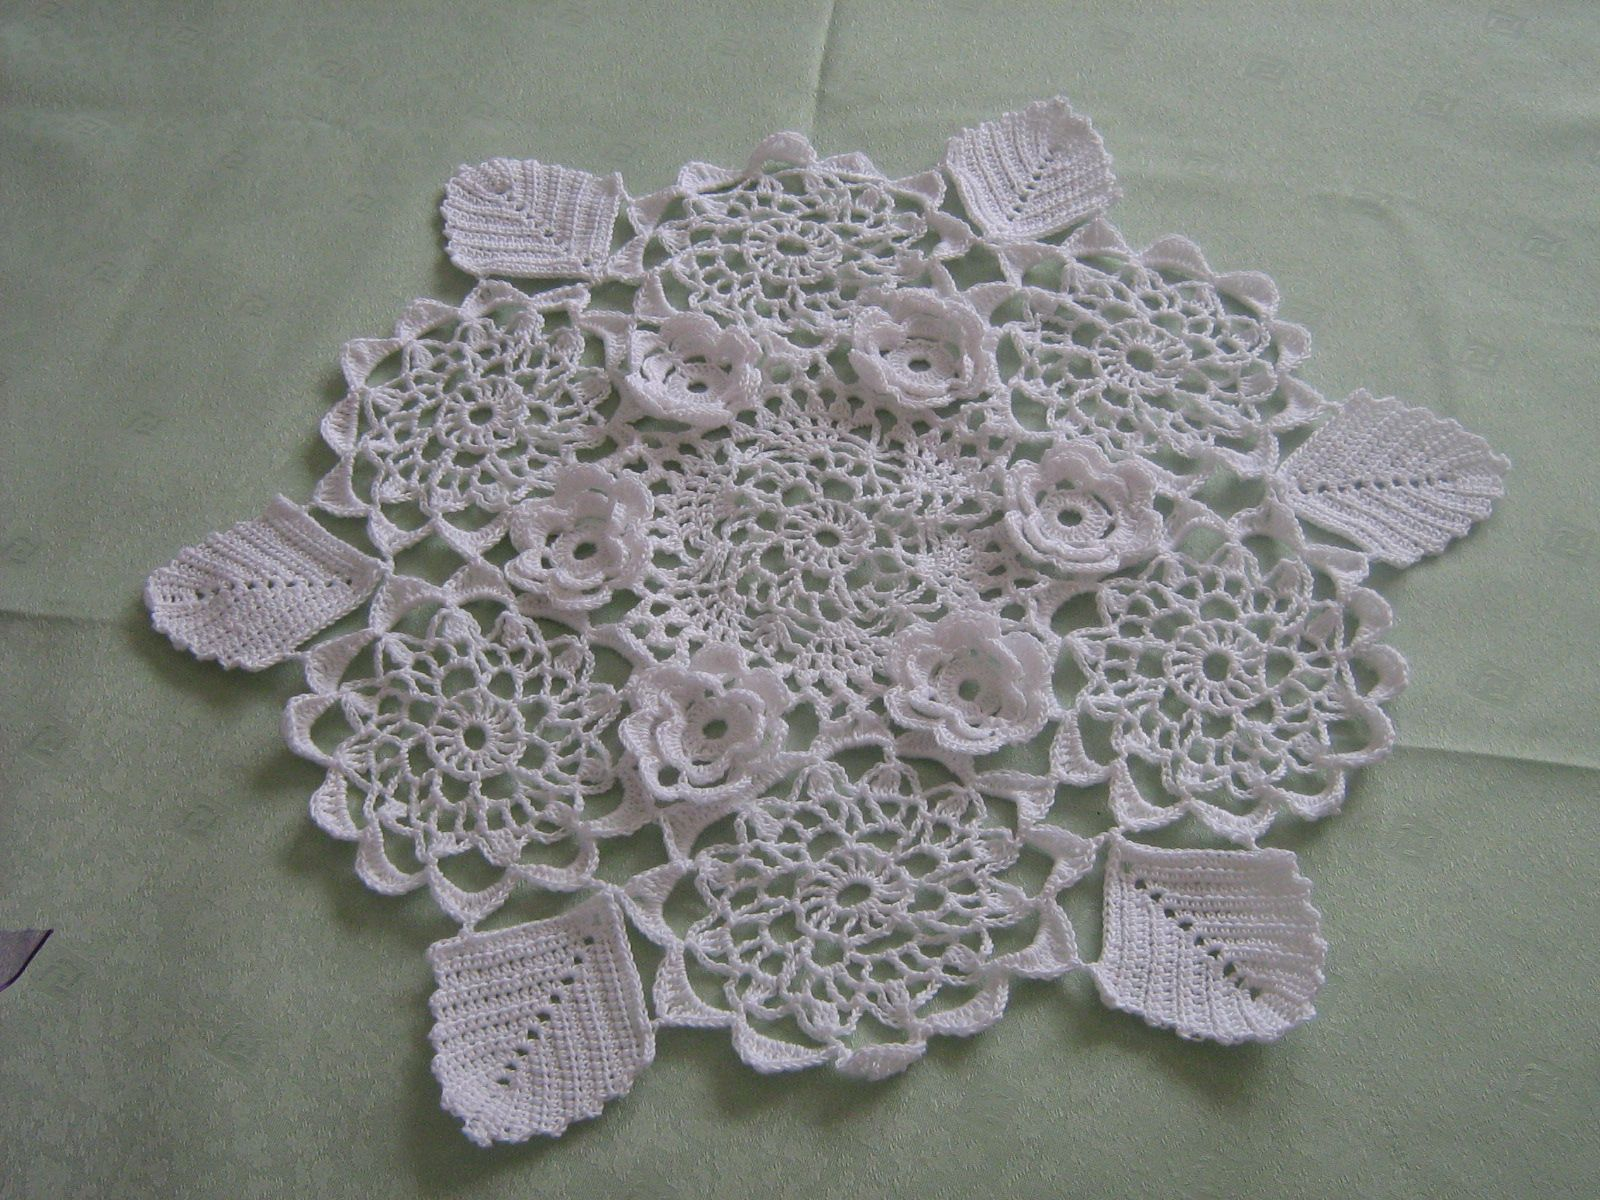 Exceptionnel crochet napperon RO26